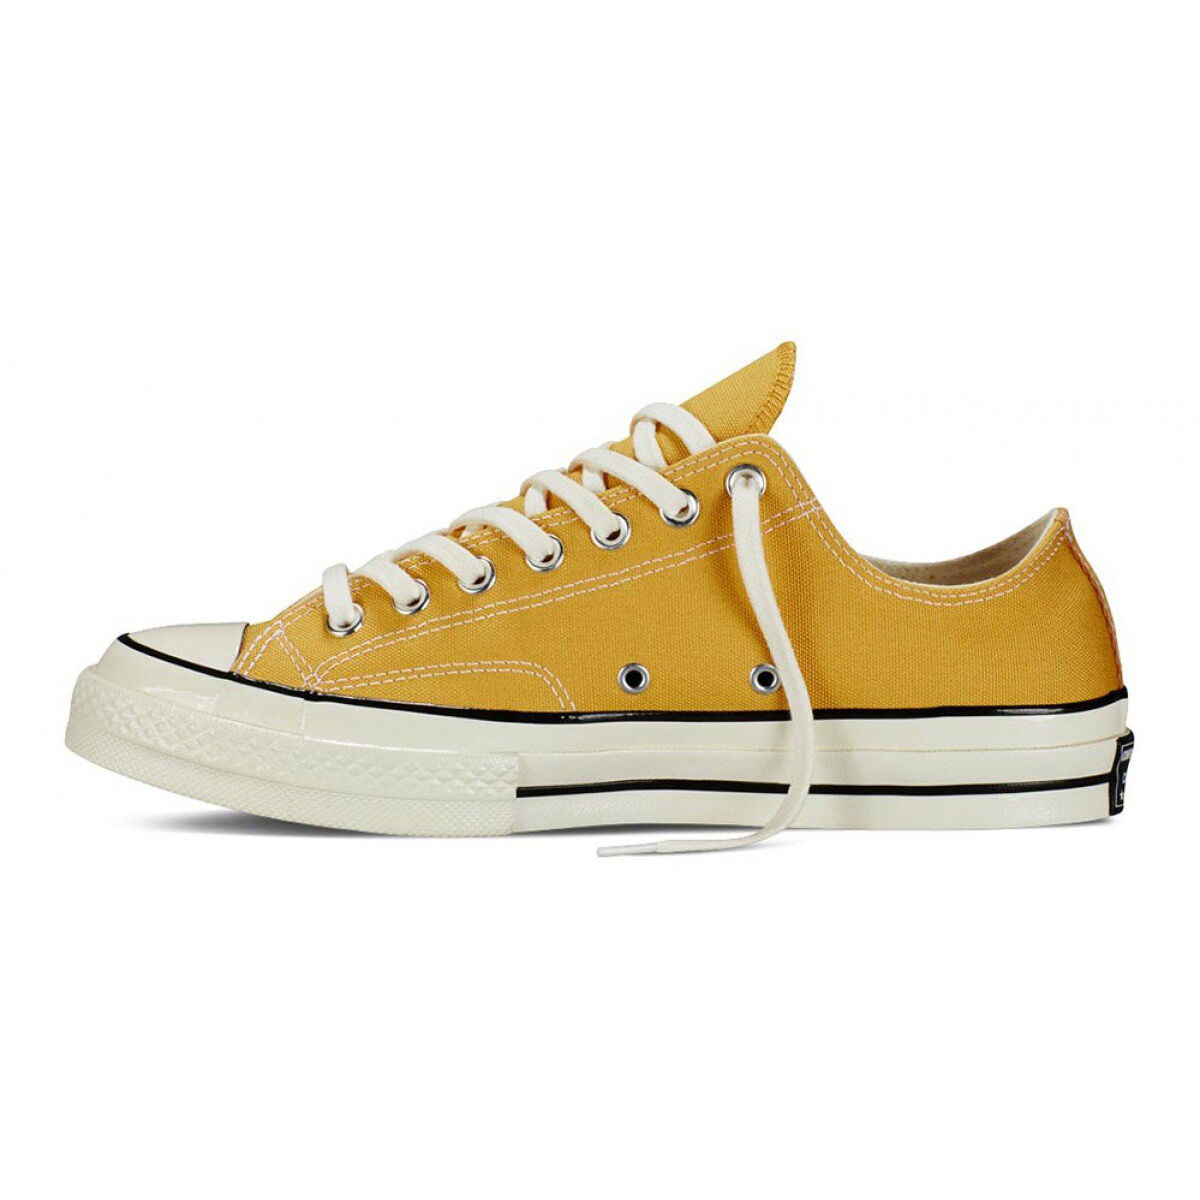 CONVERSE CHUCK Taylor All Star Low 1970s Sunflower Yellow